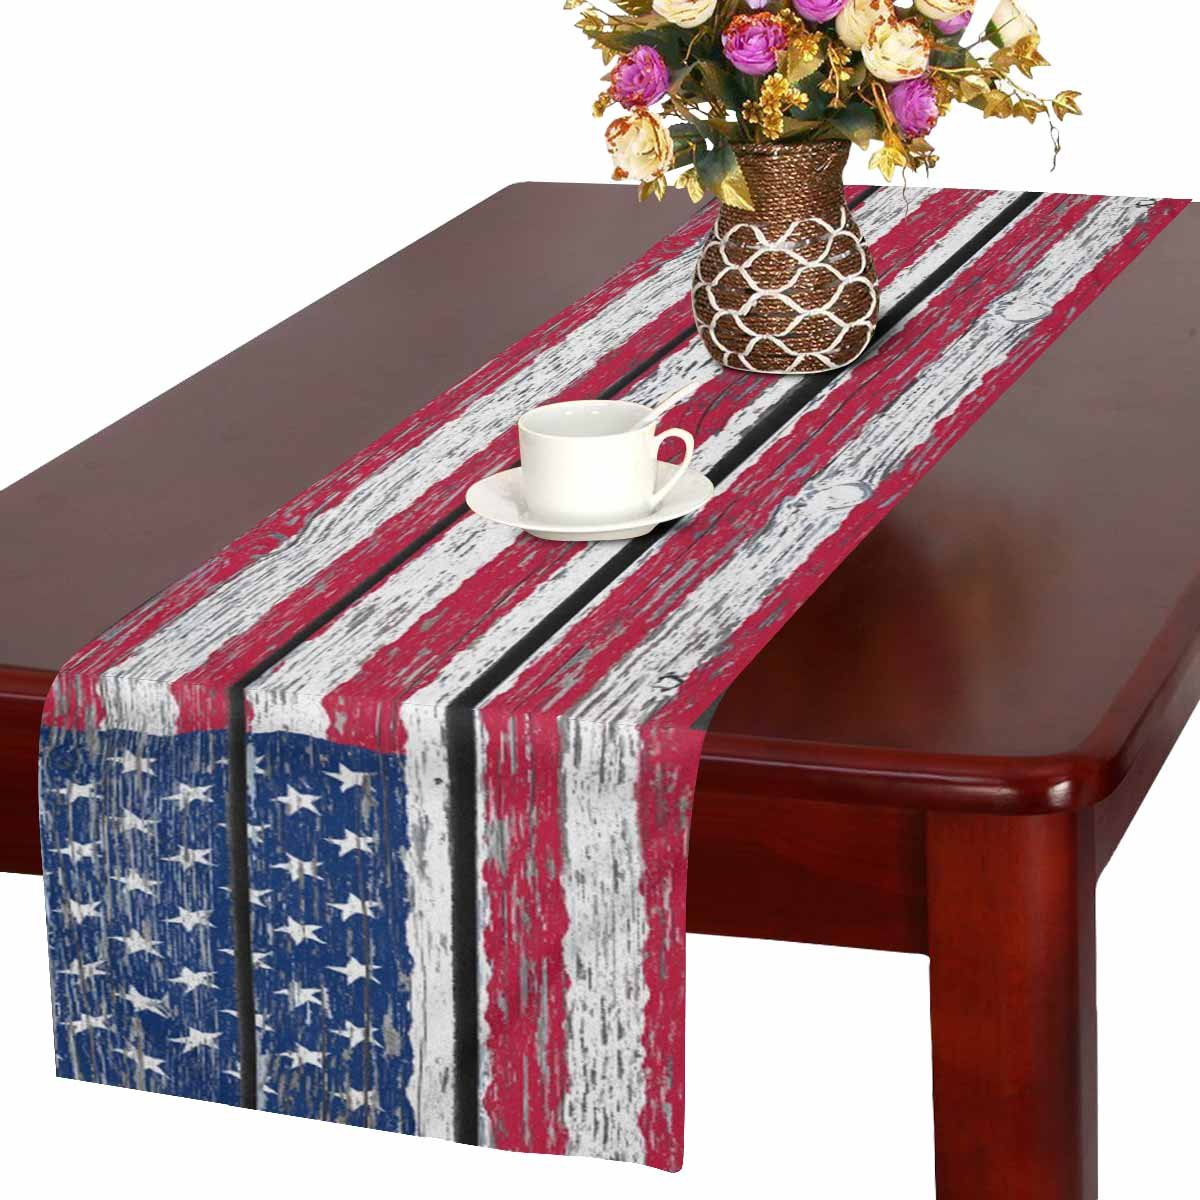 InterestPrint American Flag Independence Fourth of July on Wood Table Runner Cotton Linen Home Decor for Wedding Party Banquet Decoration 16 x 72 Inches